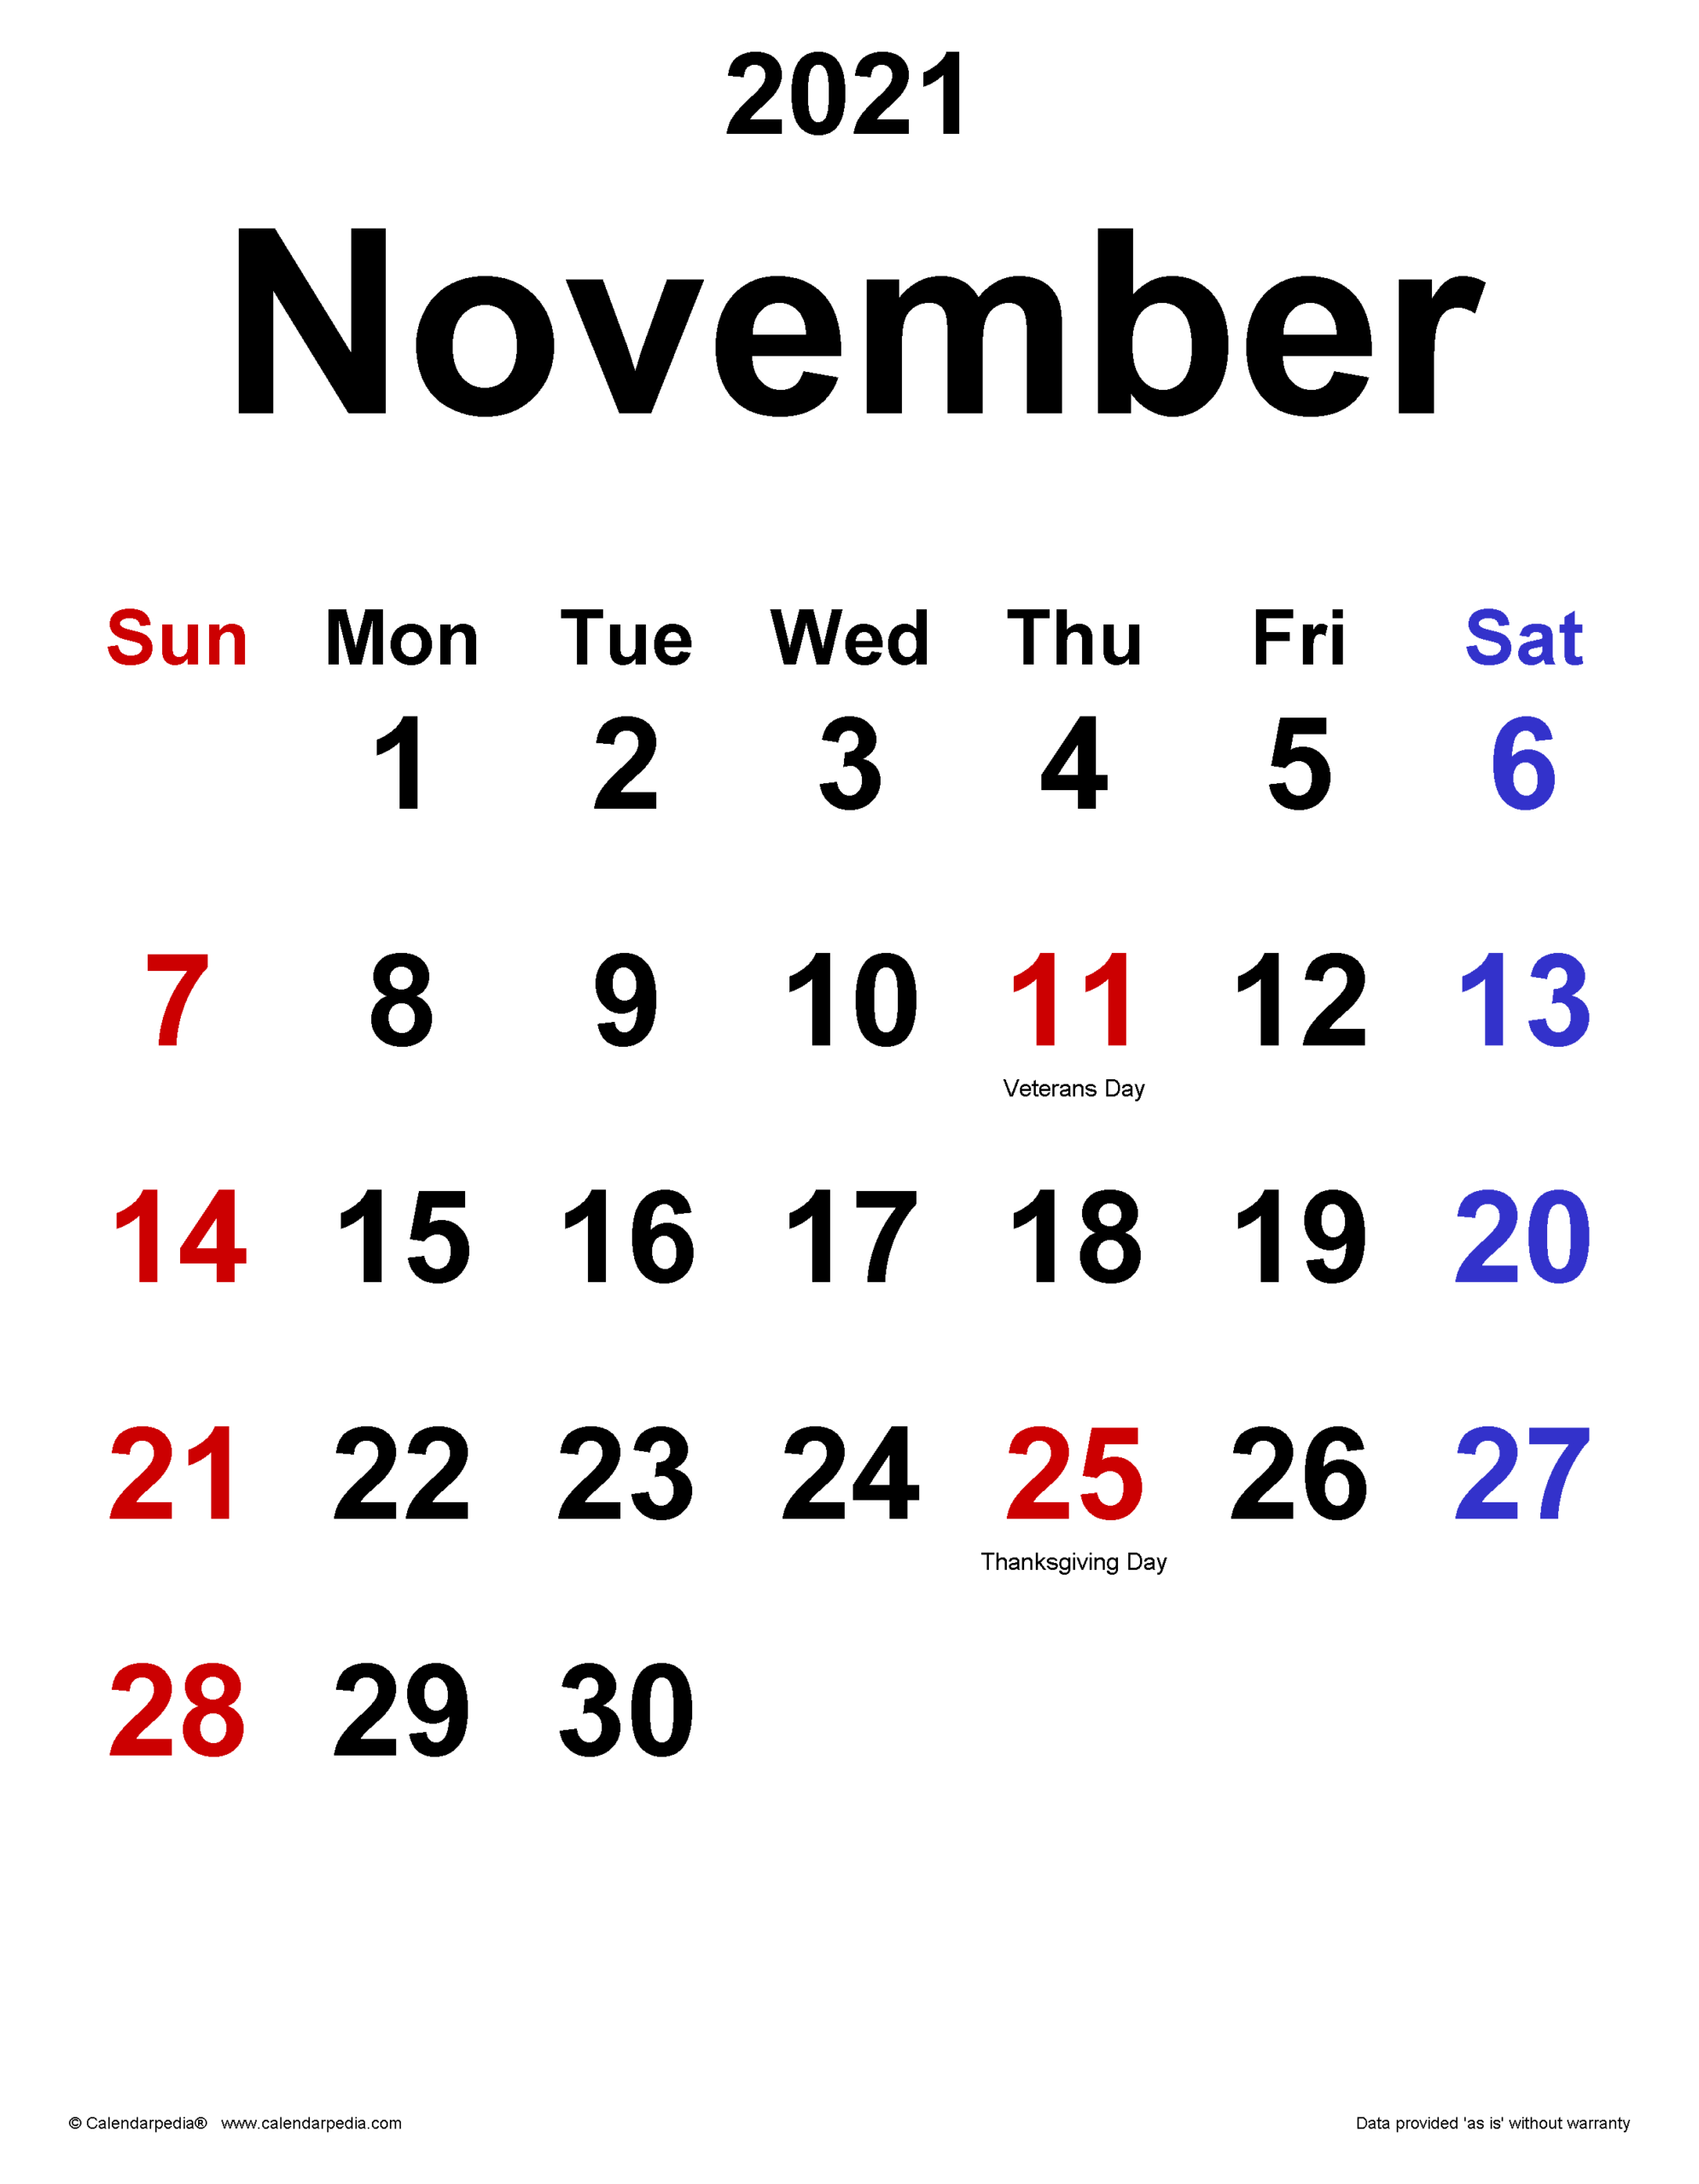 November 2021 Calendar | Templates For Word, Excel And Pdf